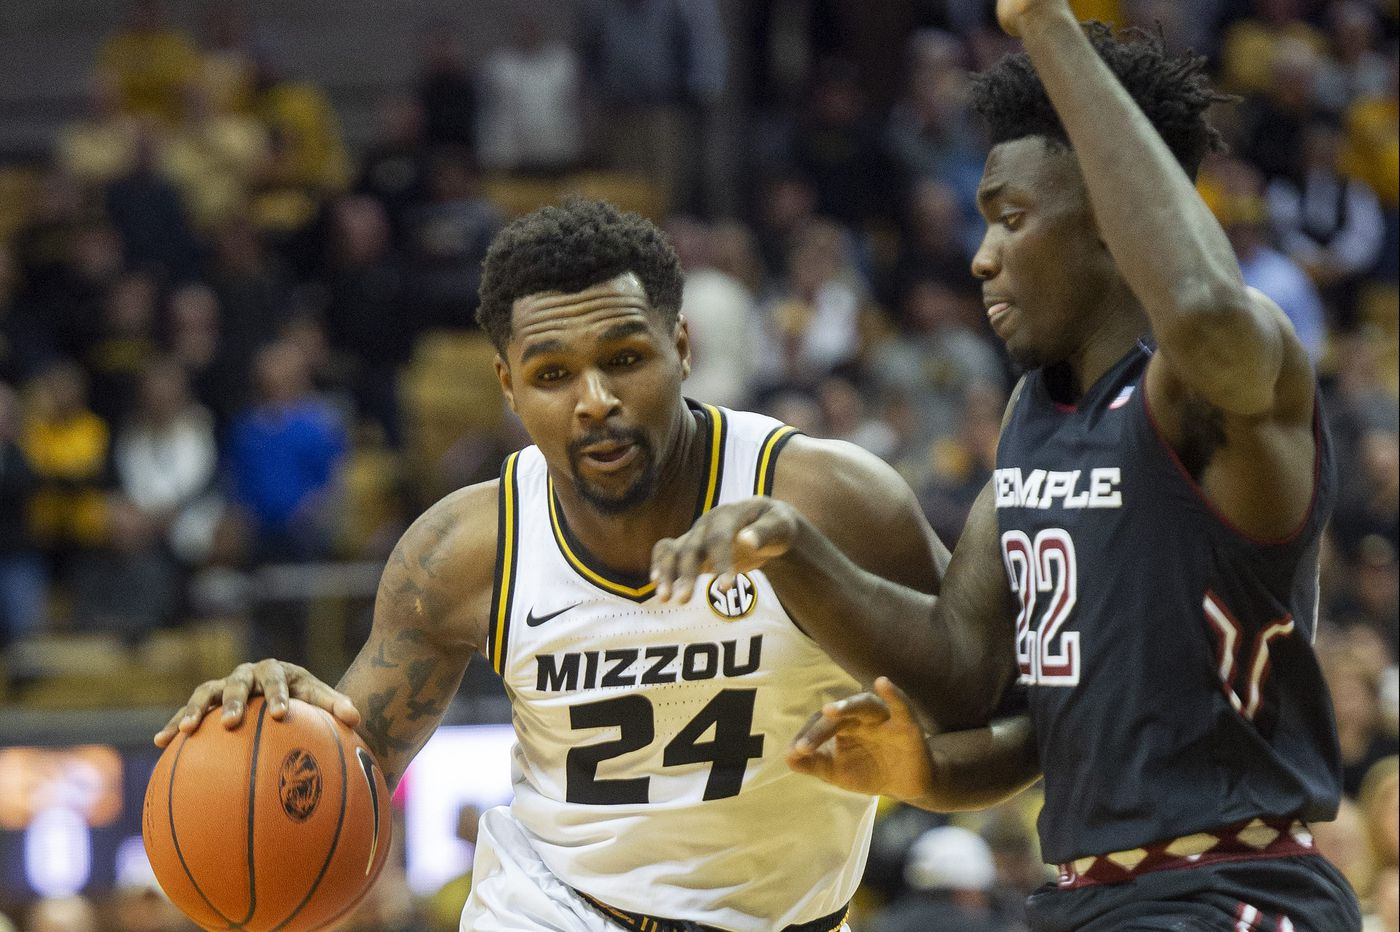 Temple forward Dre Perry looking to build on his strong showing against Missouri